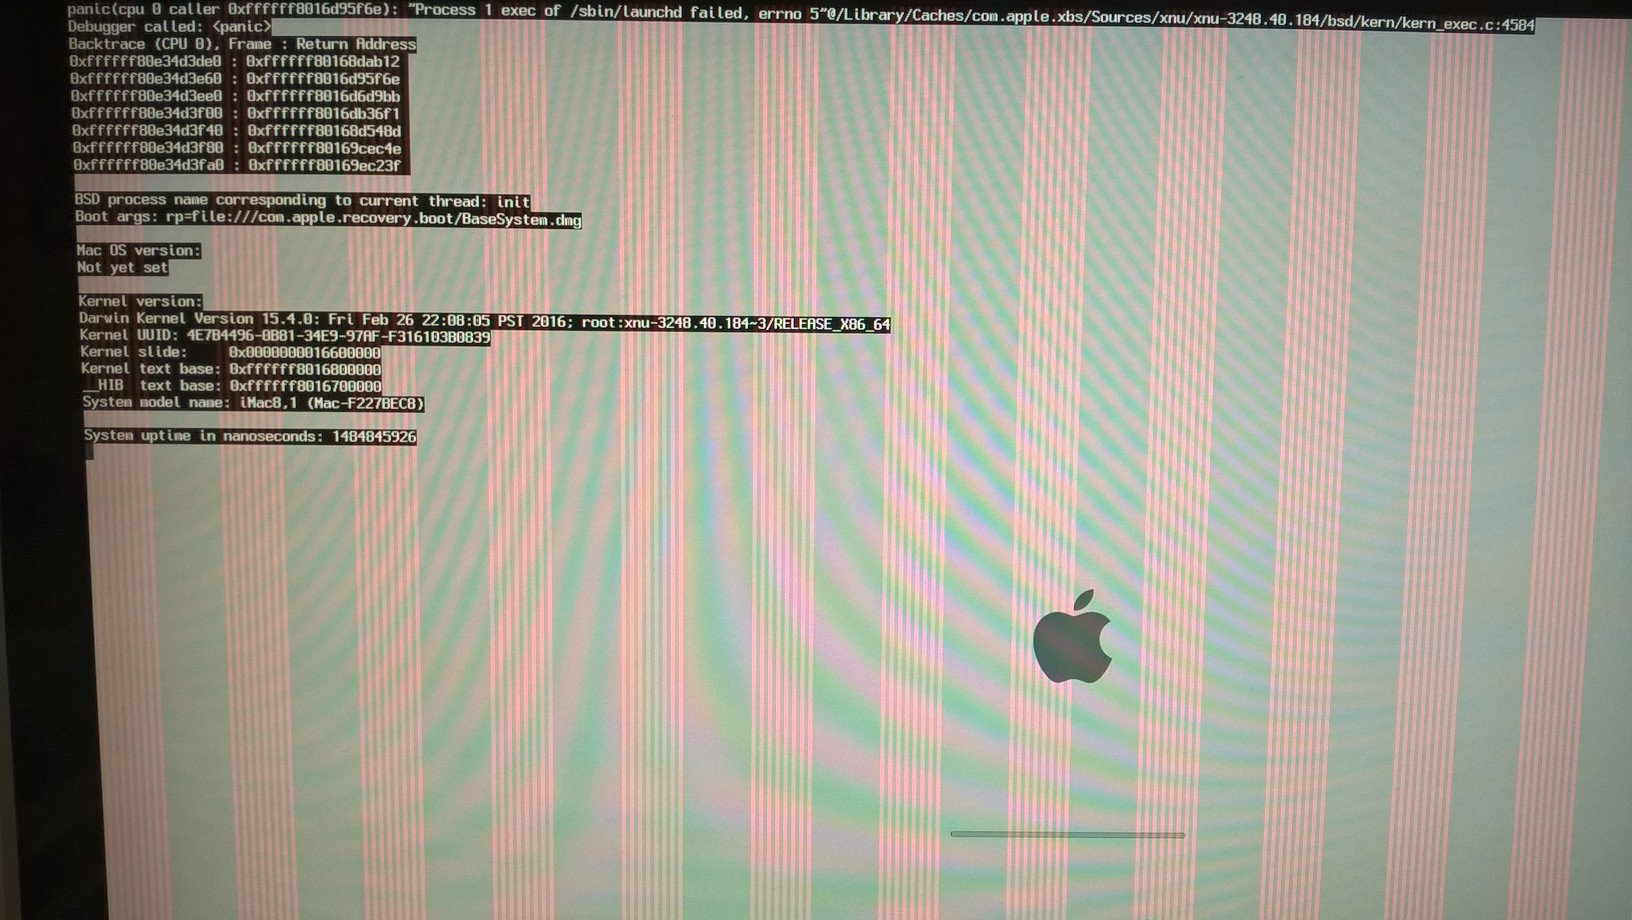 mac usb recovery boot